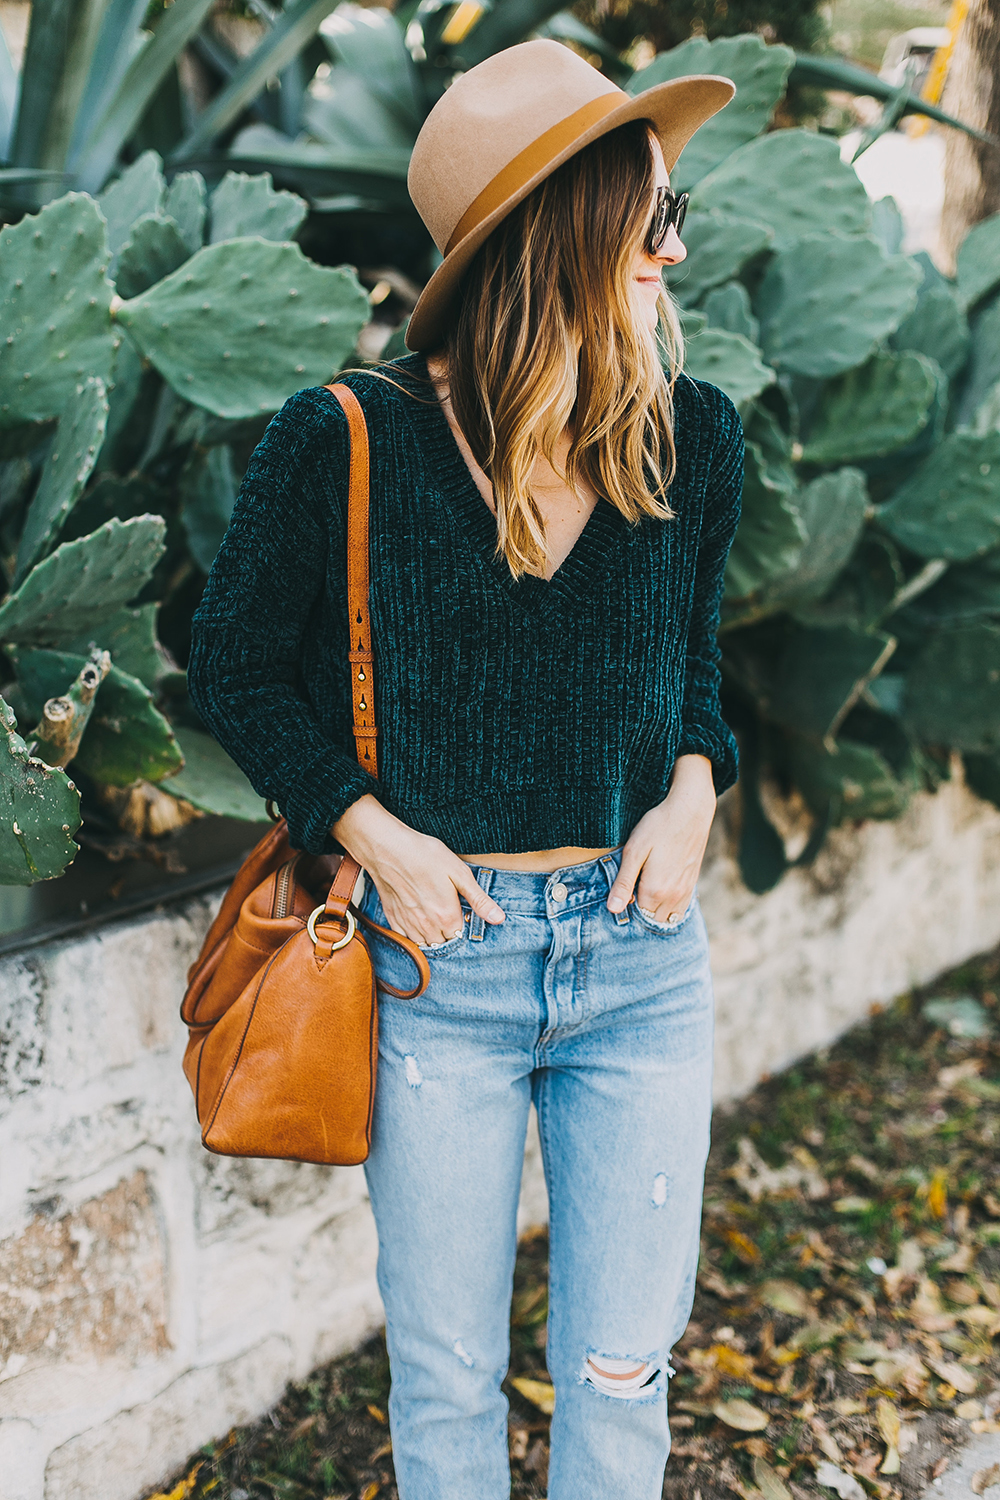 livvyland-blog-olivia-watson-austin-texas-fashion-style-blogger-teal-cropped-sweater-tassel-slides-8